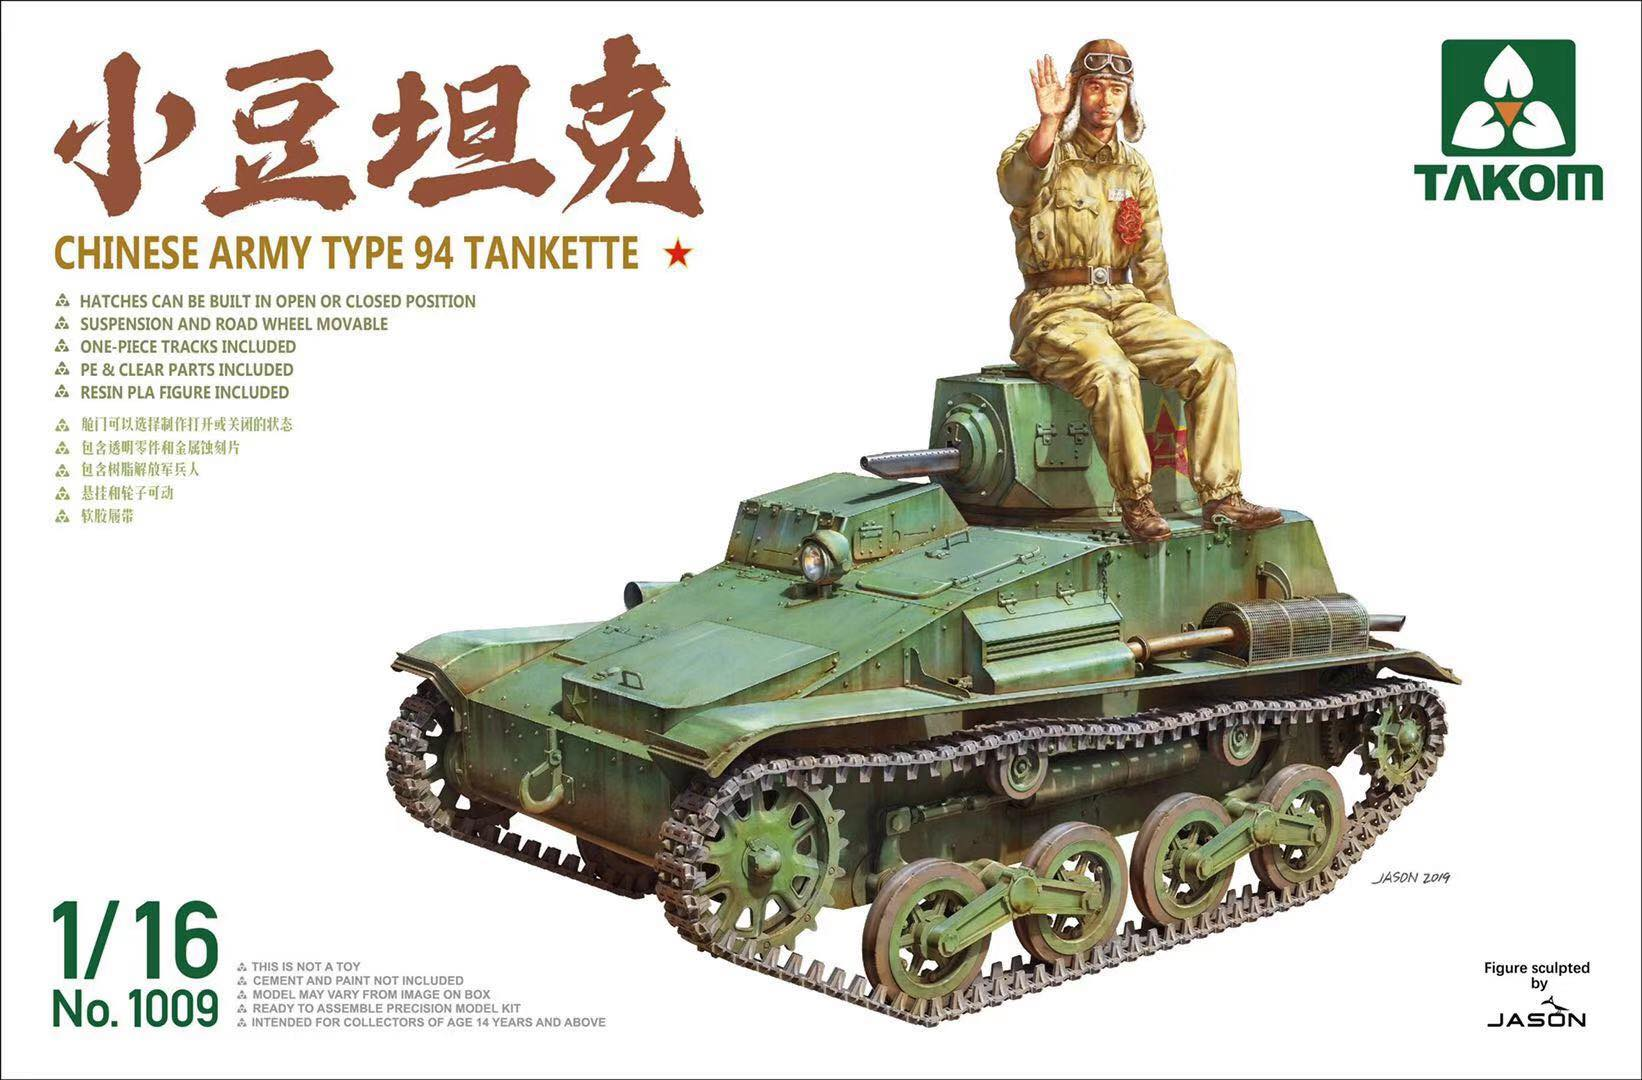 1/16 Imperial Japanese Army Type 94 Tankette (Late Production) #1009